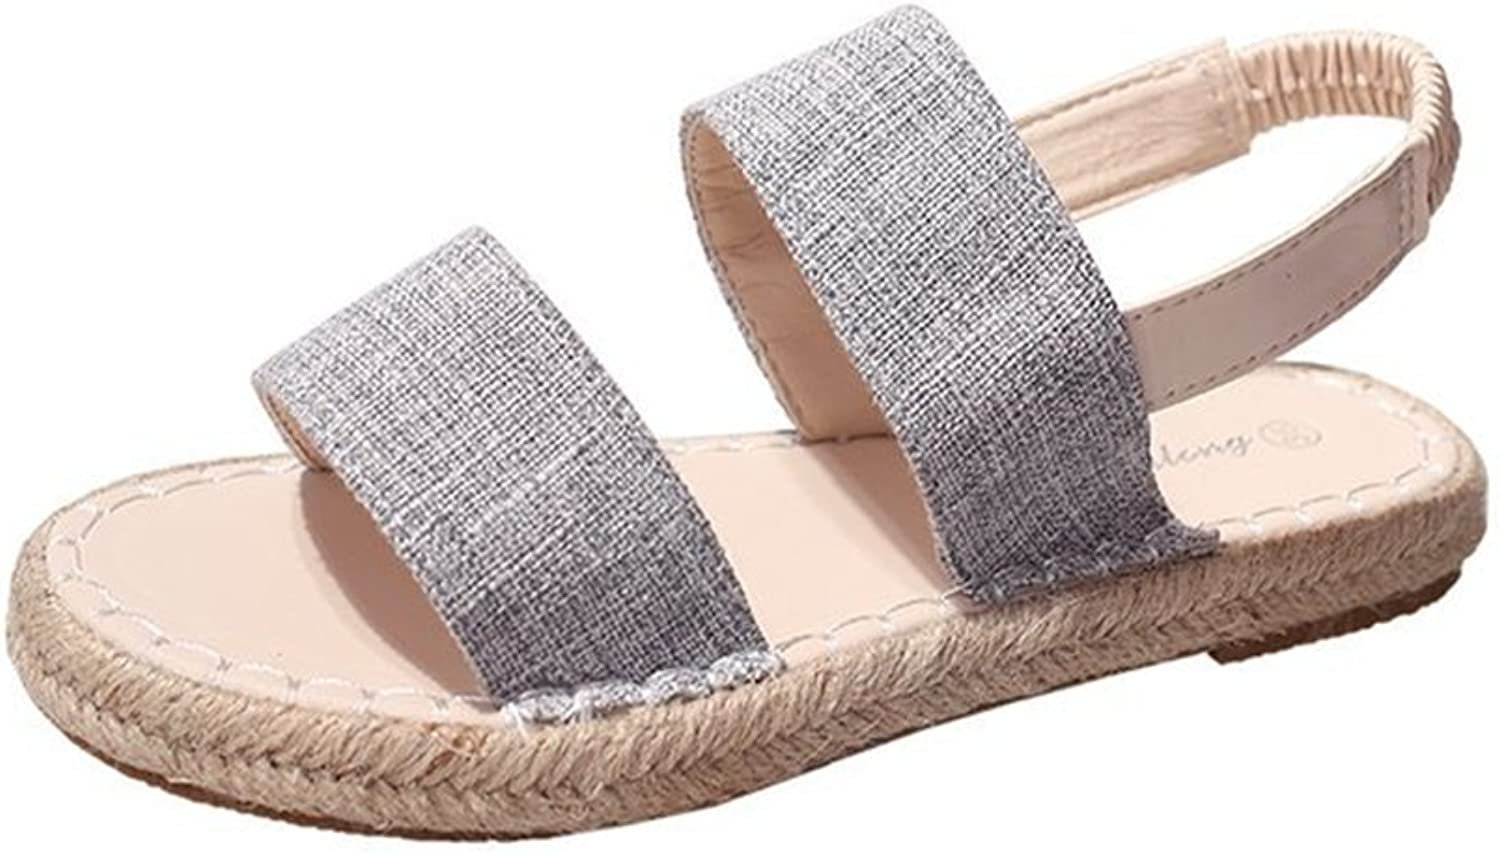 SUNNY Store Sandal, Soft Ankle-Tie, Closed Toe, Espadrilles Flats Made in Spain